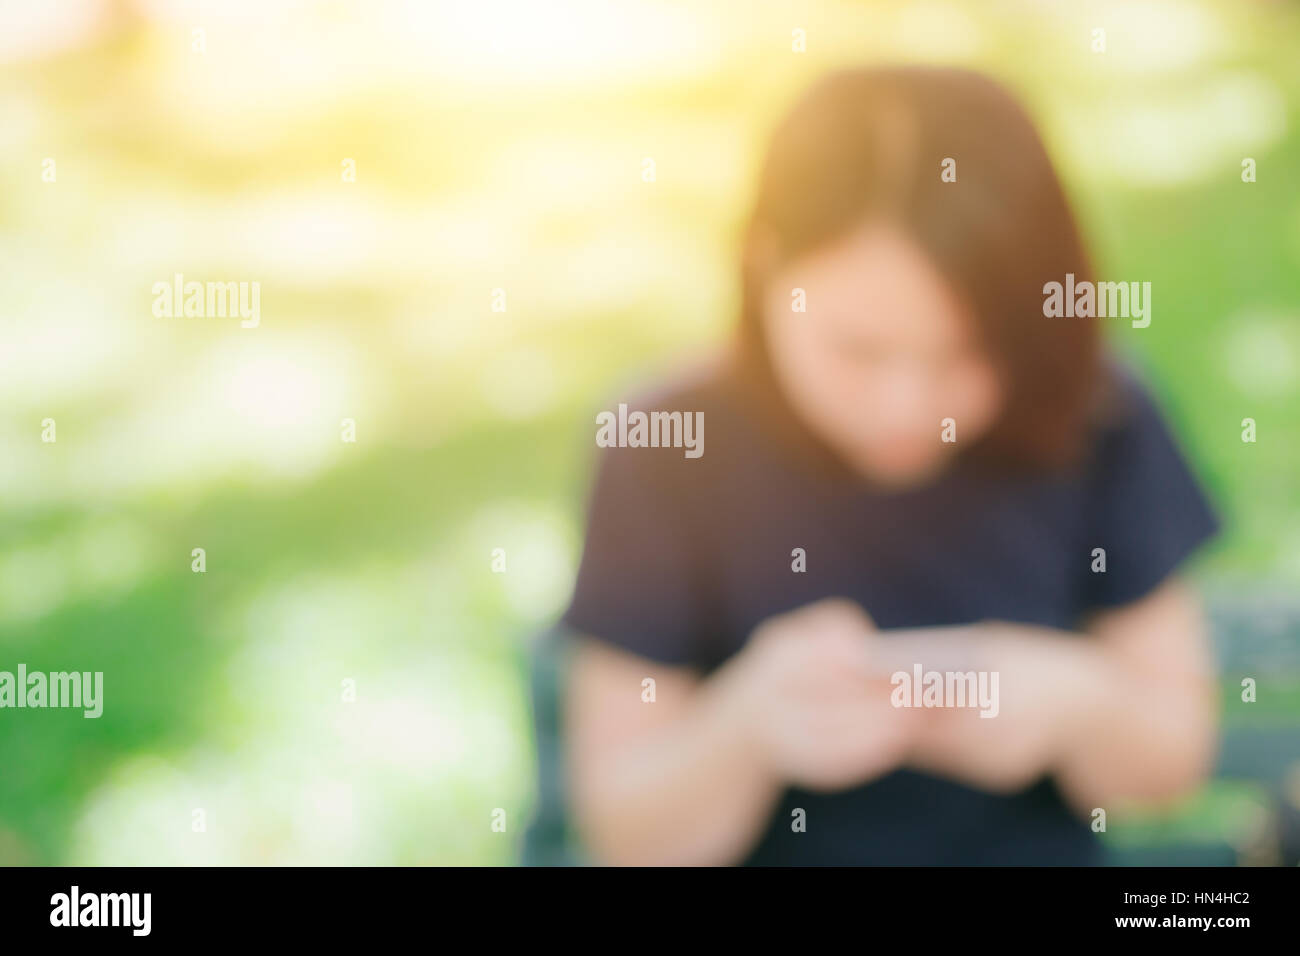 Blur Teen Phone Chat For Background Asian Girl Black Short Hair Stock Photo Alamy